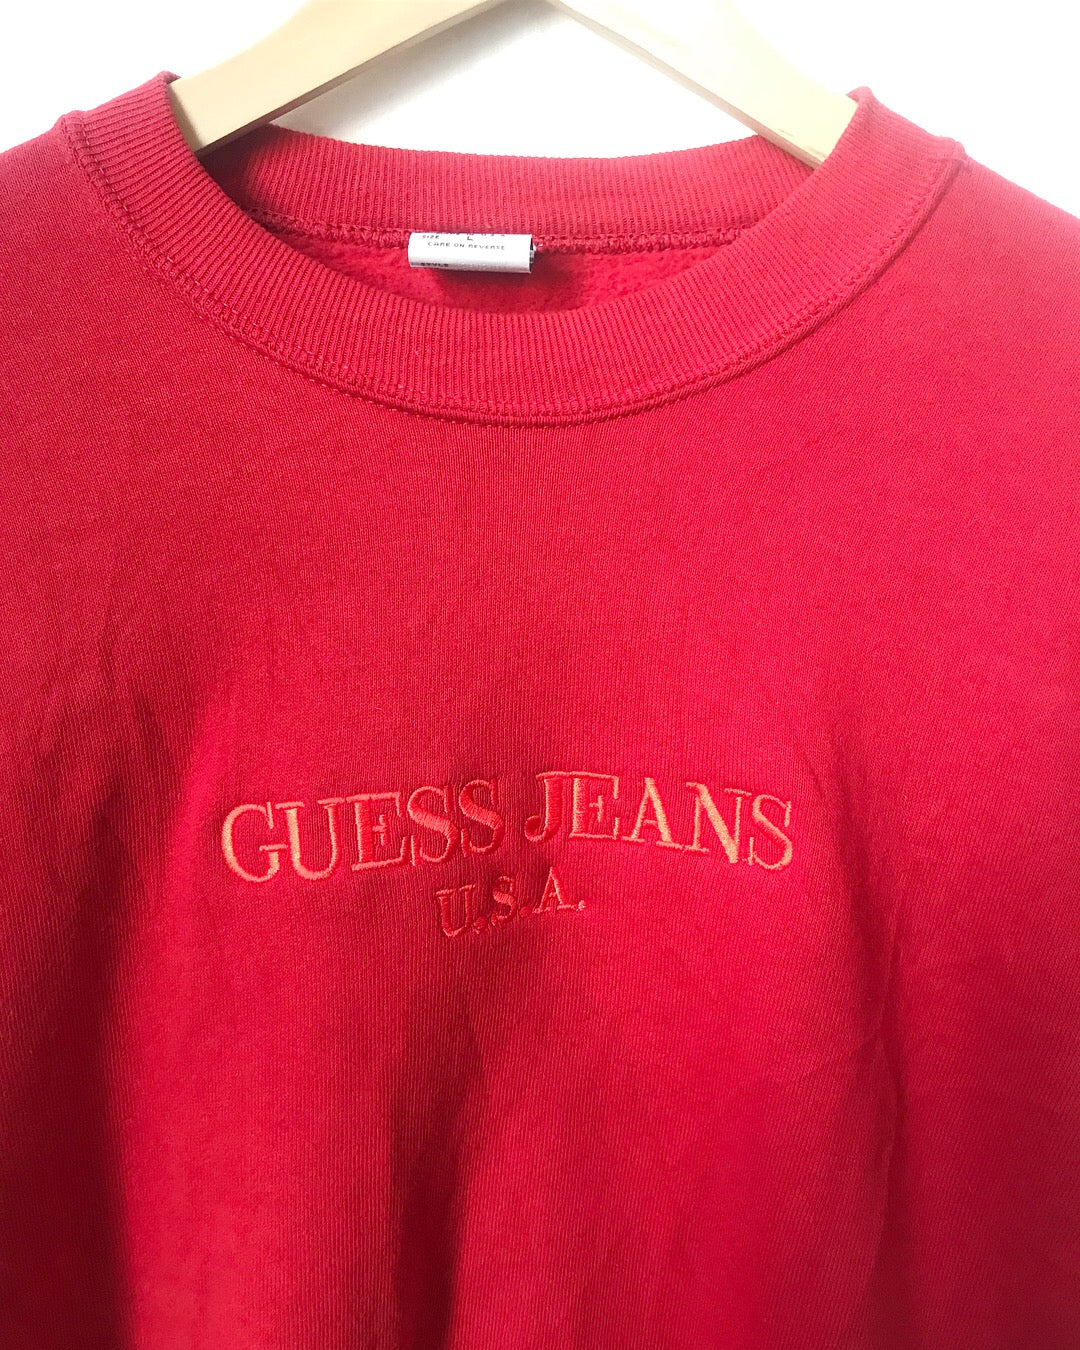 wide selection of colors large assortment latest selection of 2019 Vintage GUESS sweatshirt in Red